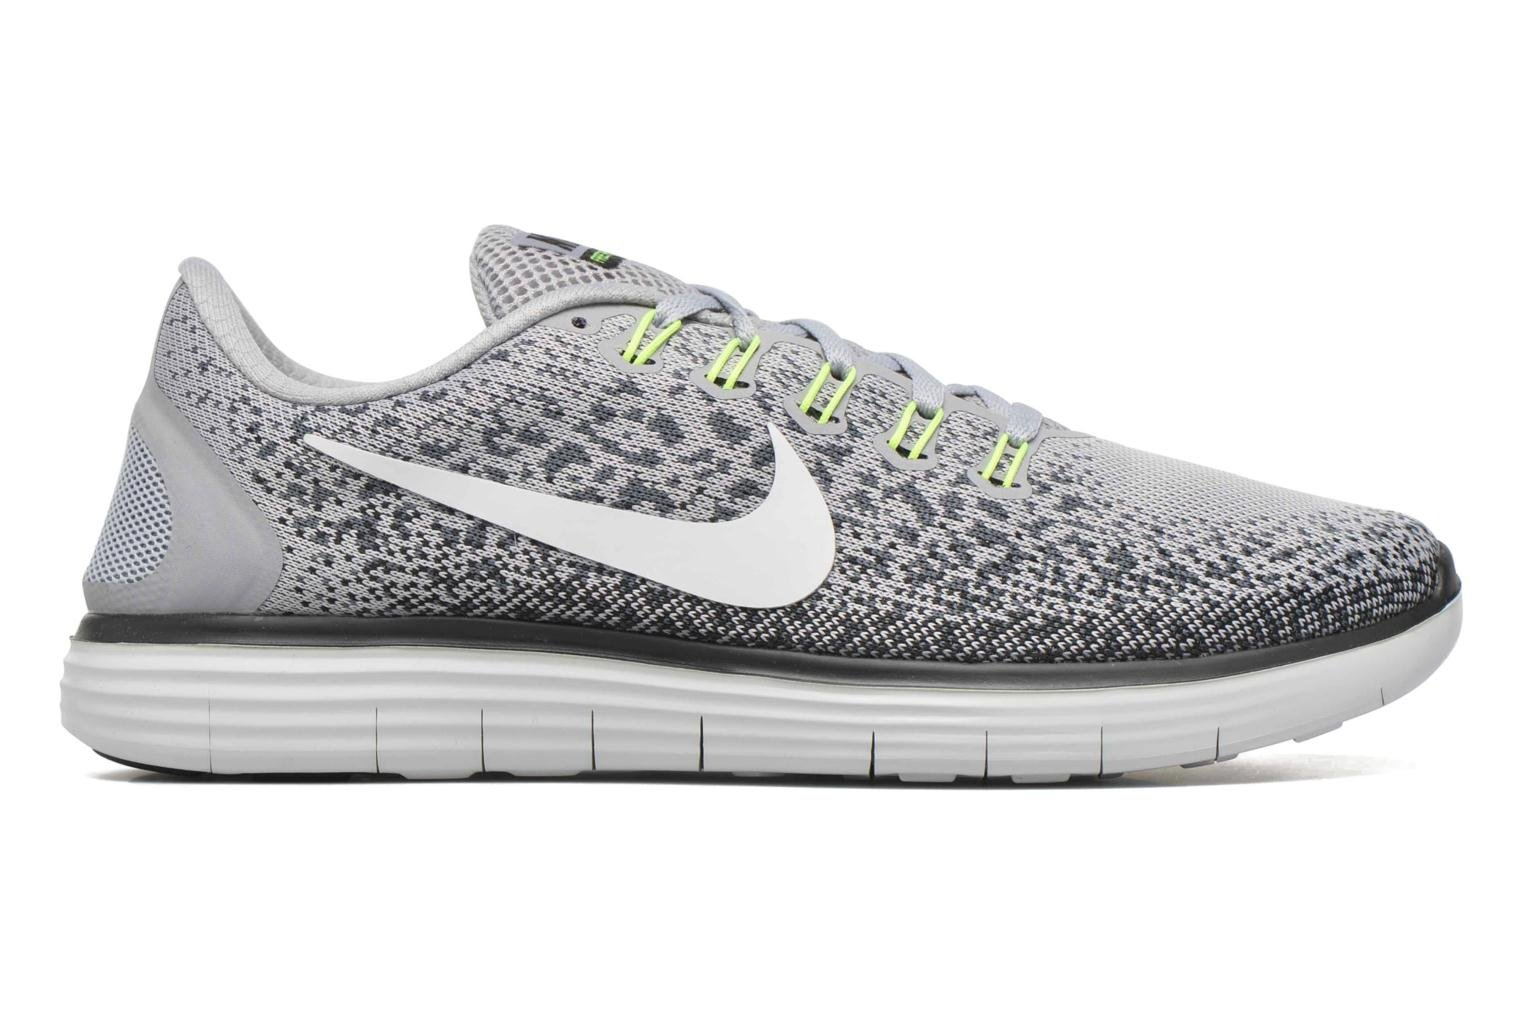 Nike Free Rn Distance Wlf Gry/Off White-Cl Gry-Black